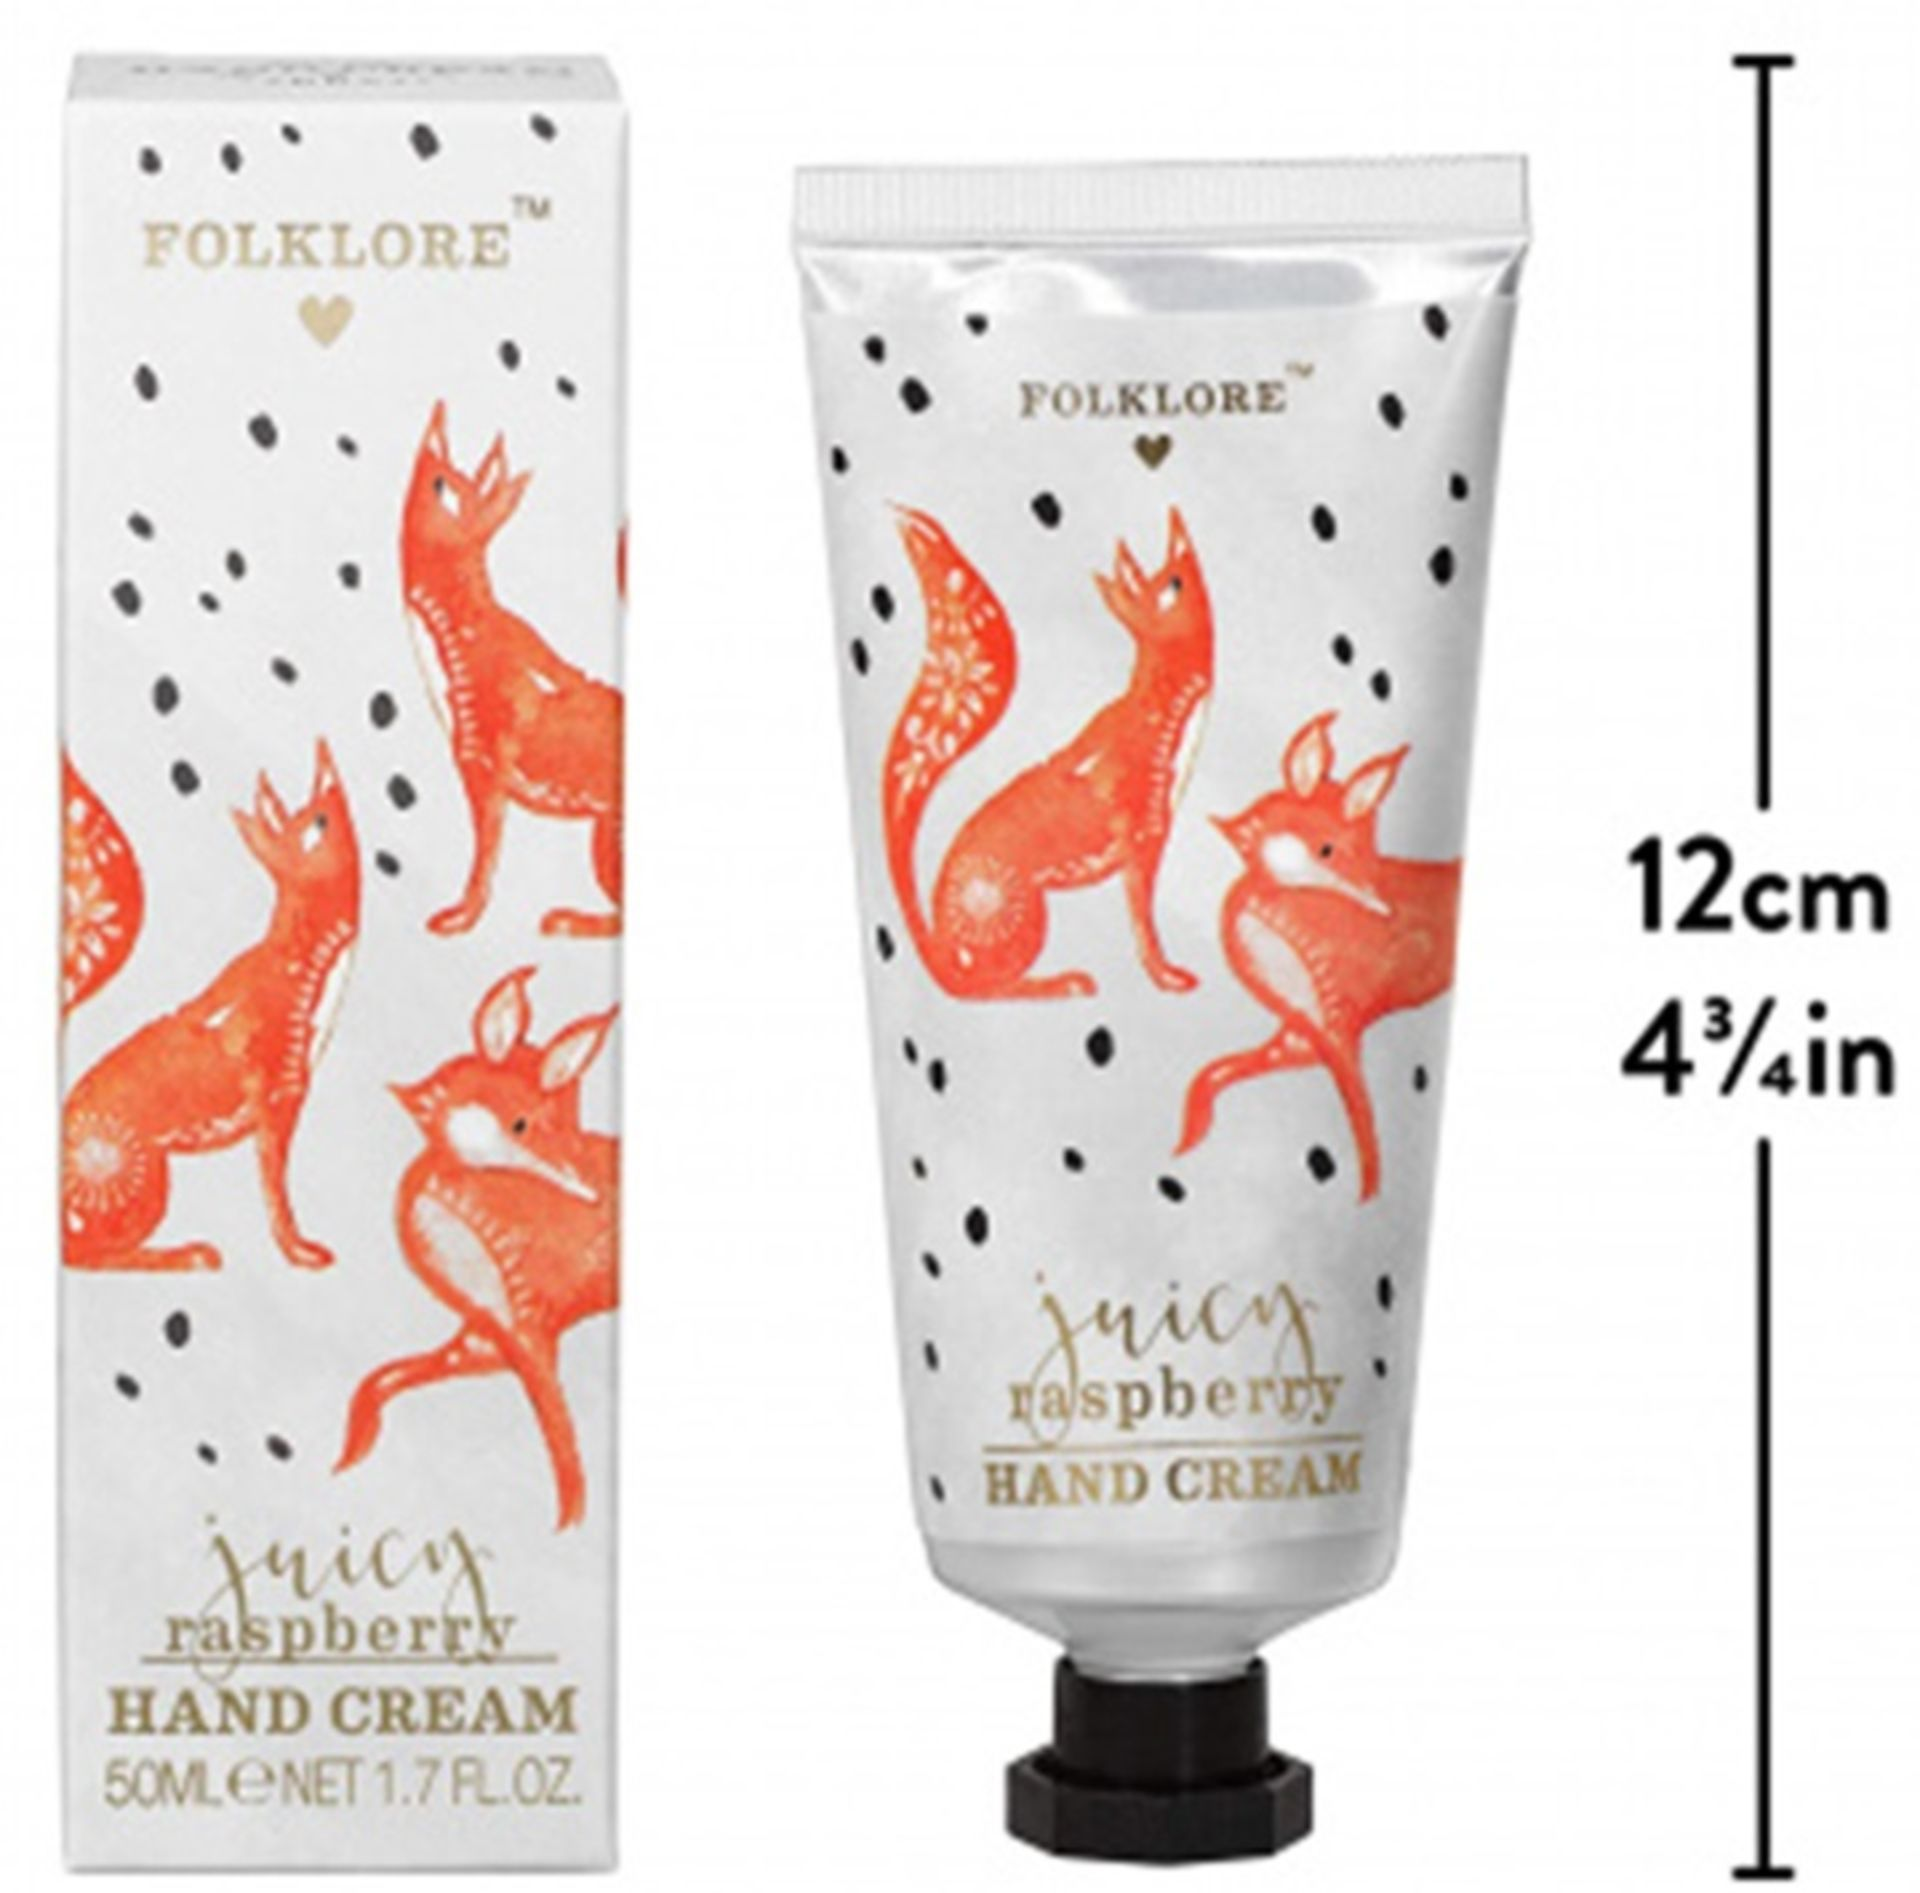 500 x Various Folklore Handcream   50ml   Total RRP £4,495 - Image 3 of 4